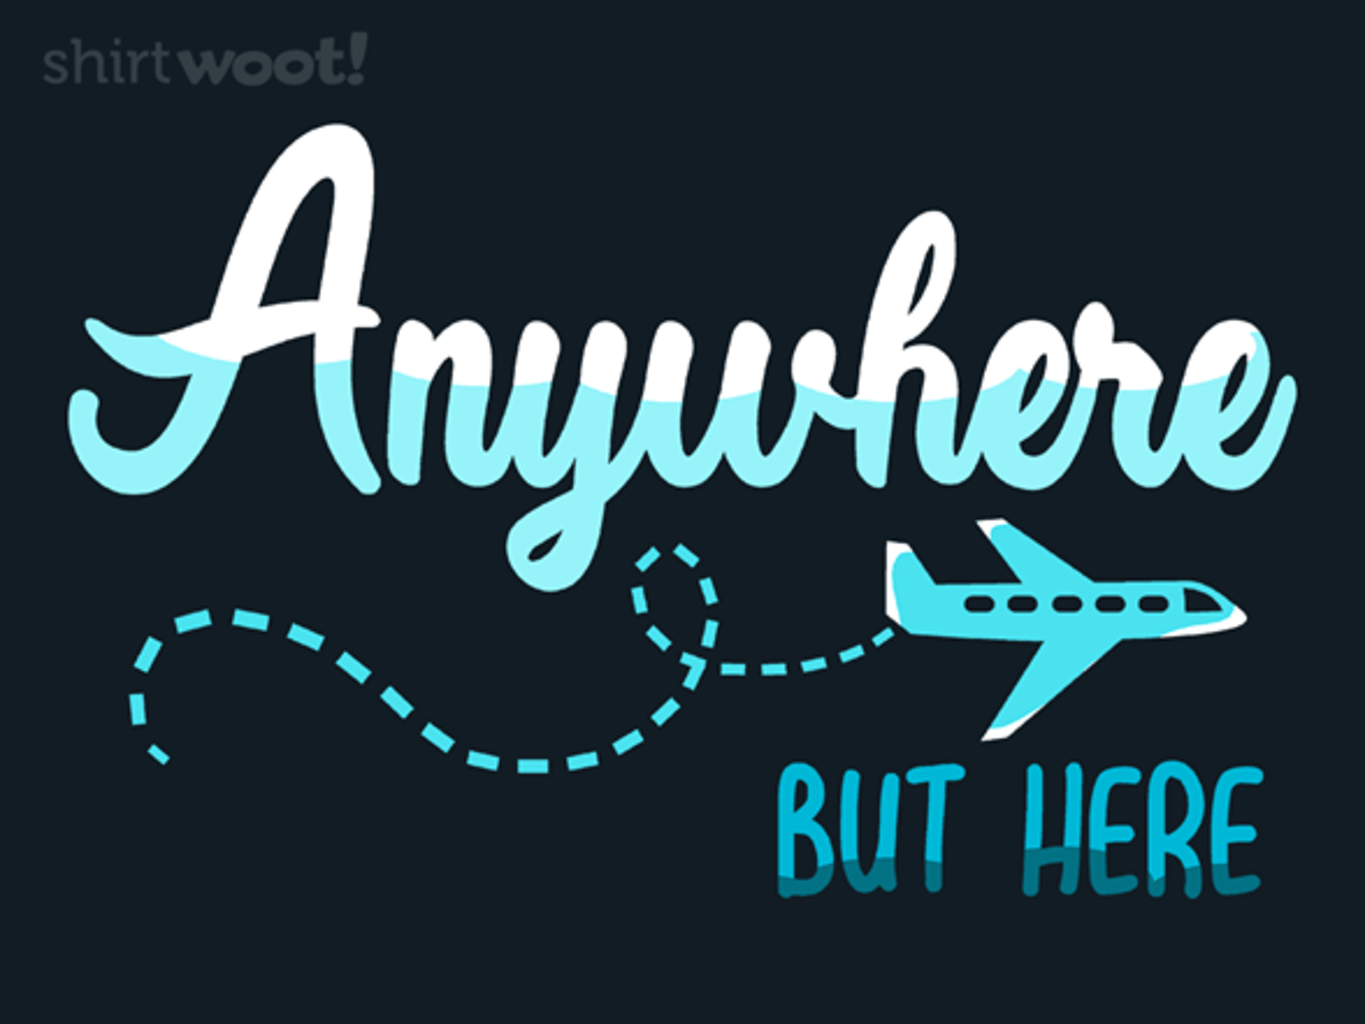 Woot!: Anywhere